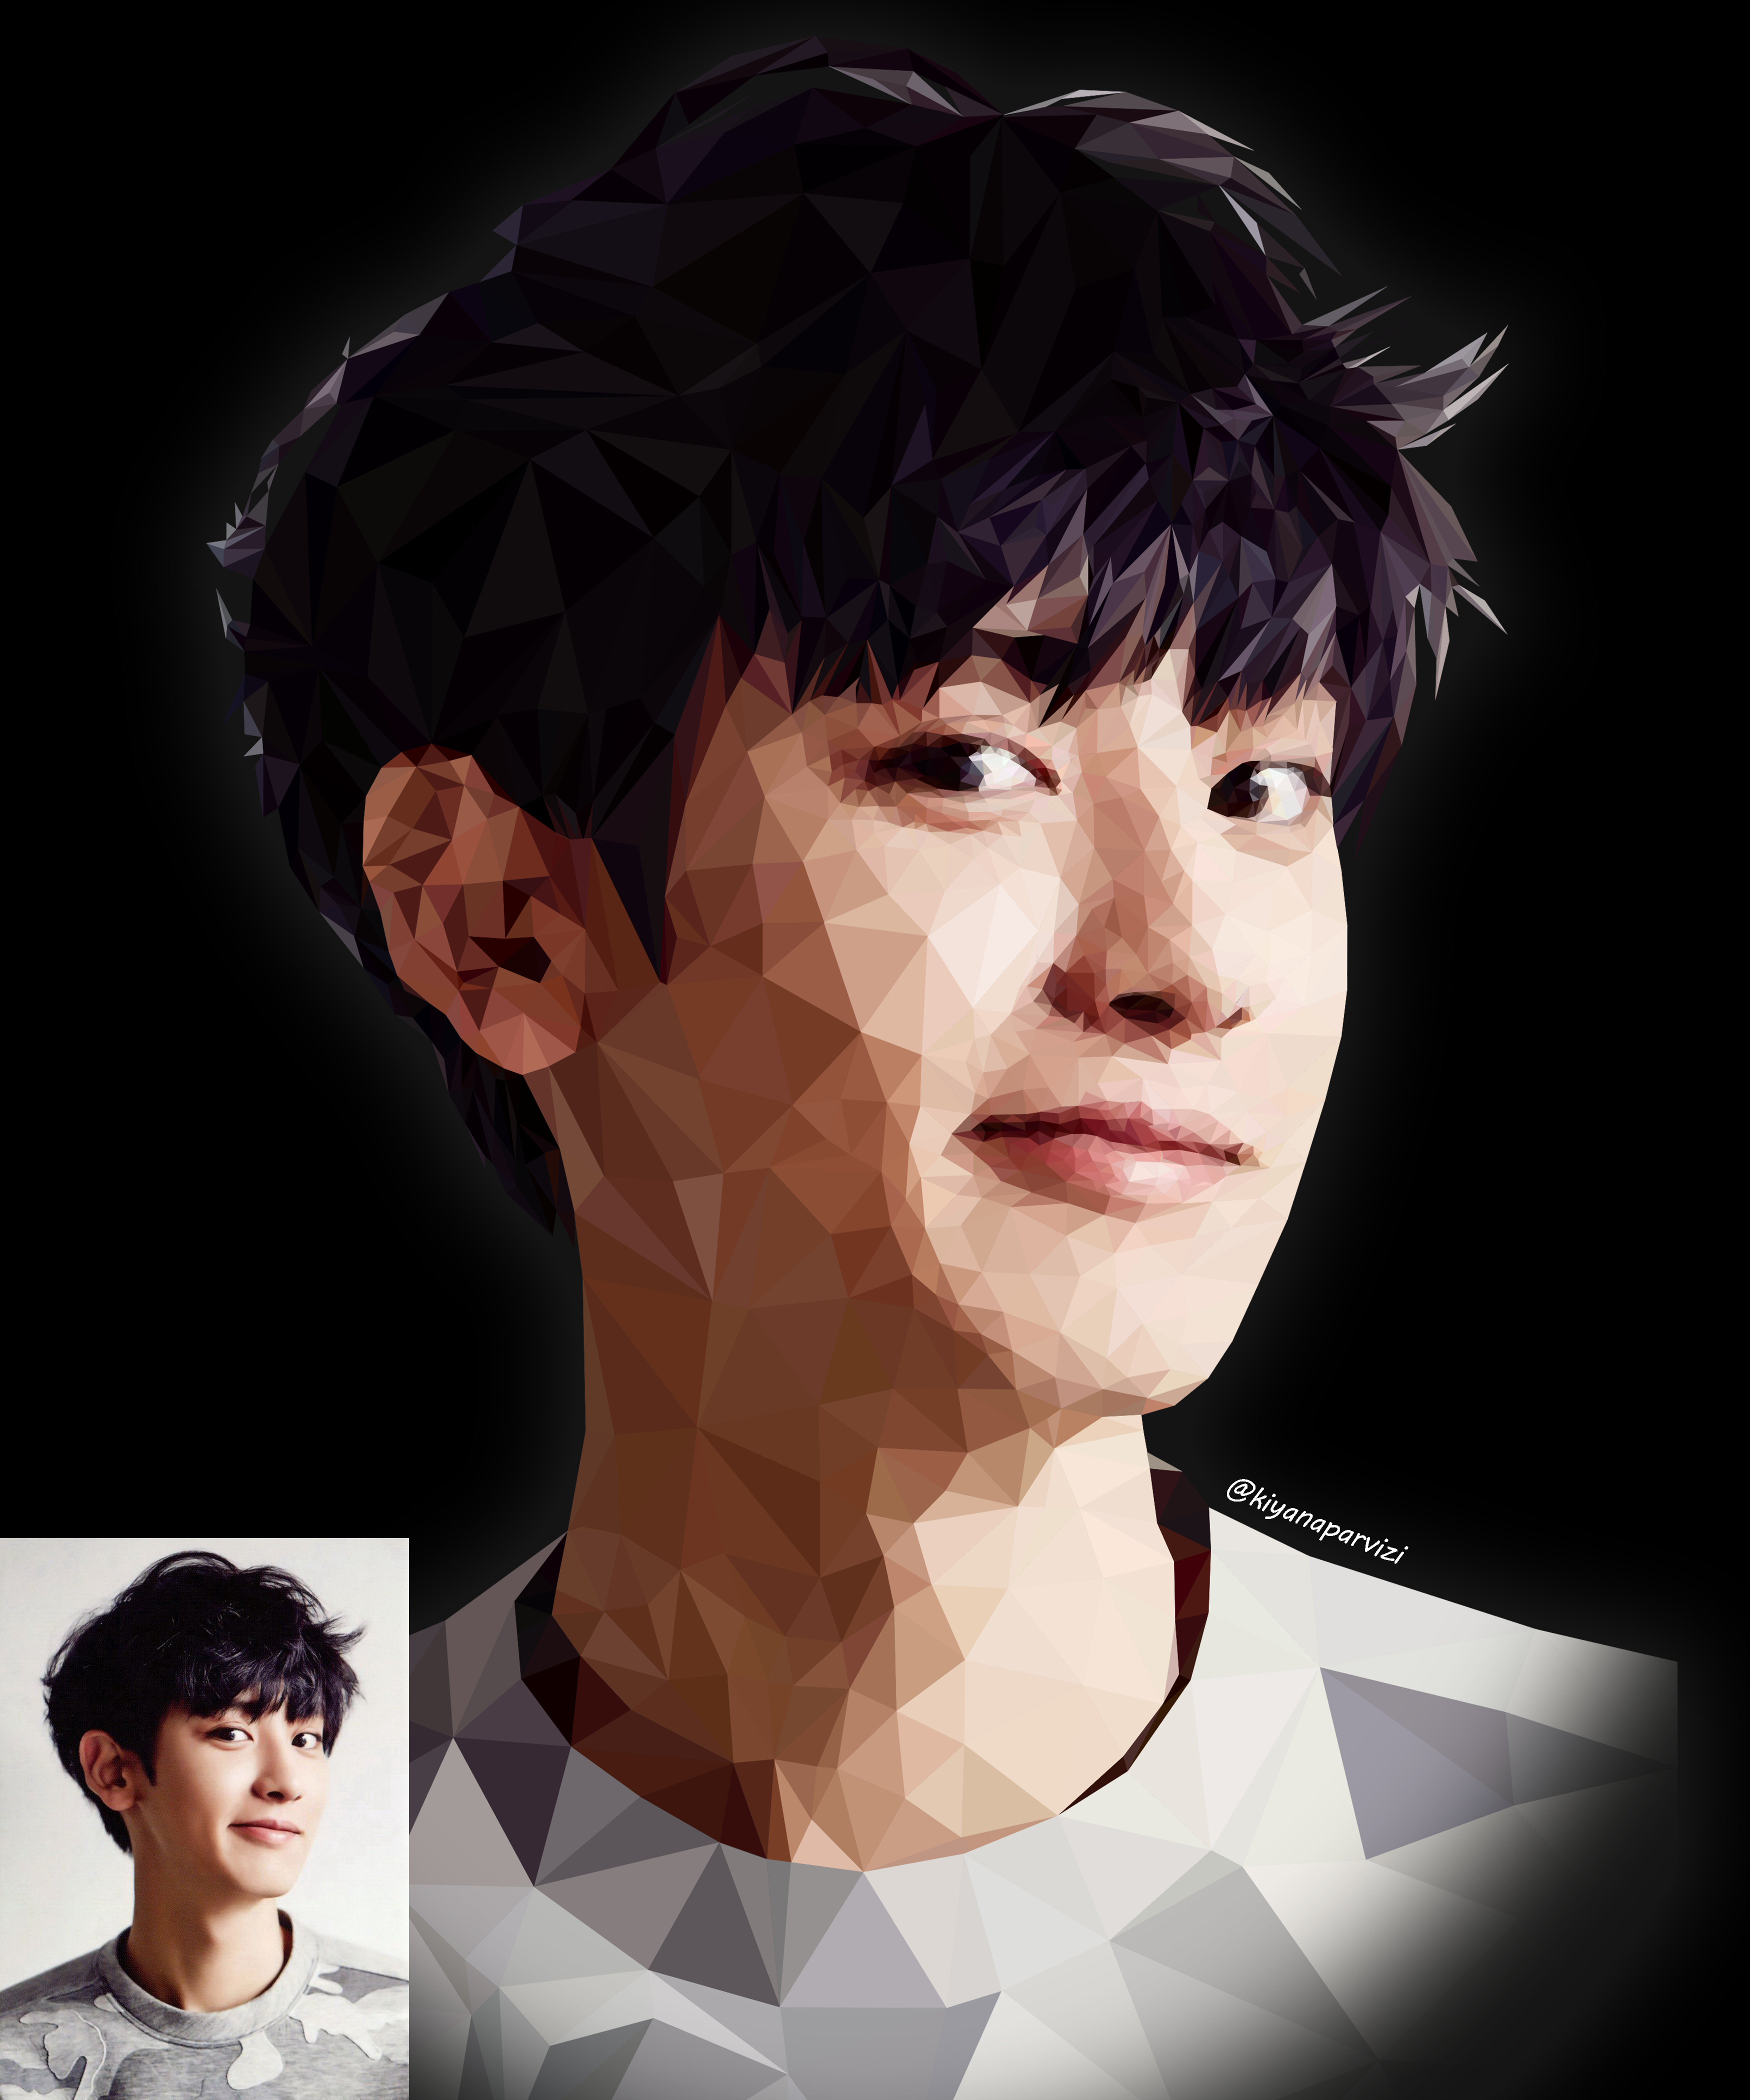 https://www.uplooder.net/img/image/12/8e555936c44d1502ced72b1849bf0516/chanyeol1.png